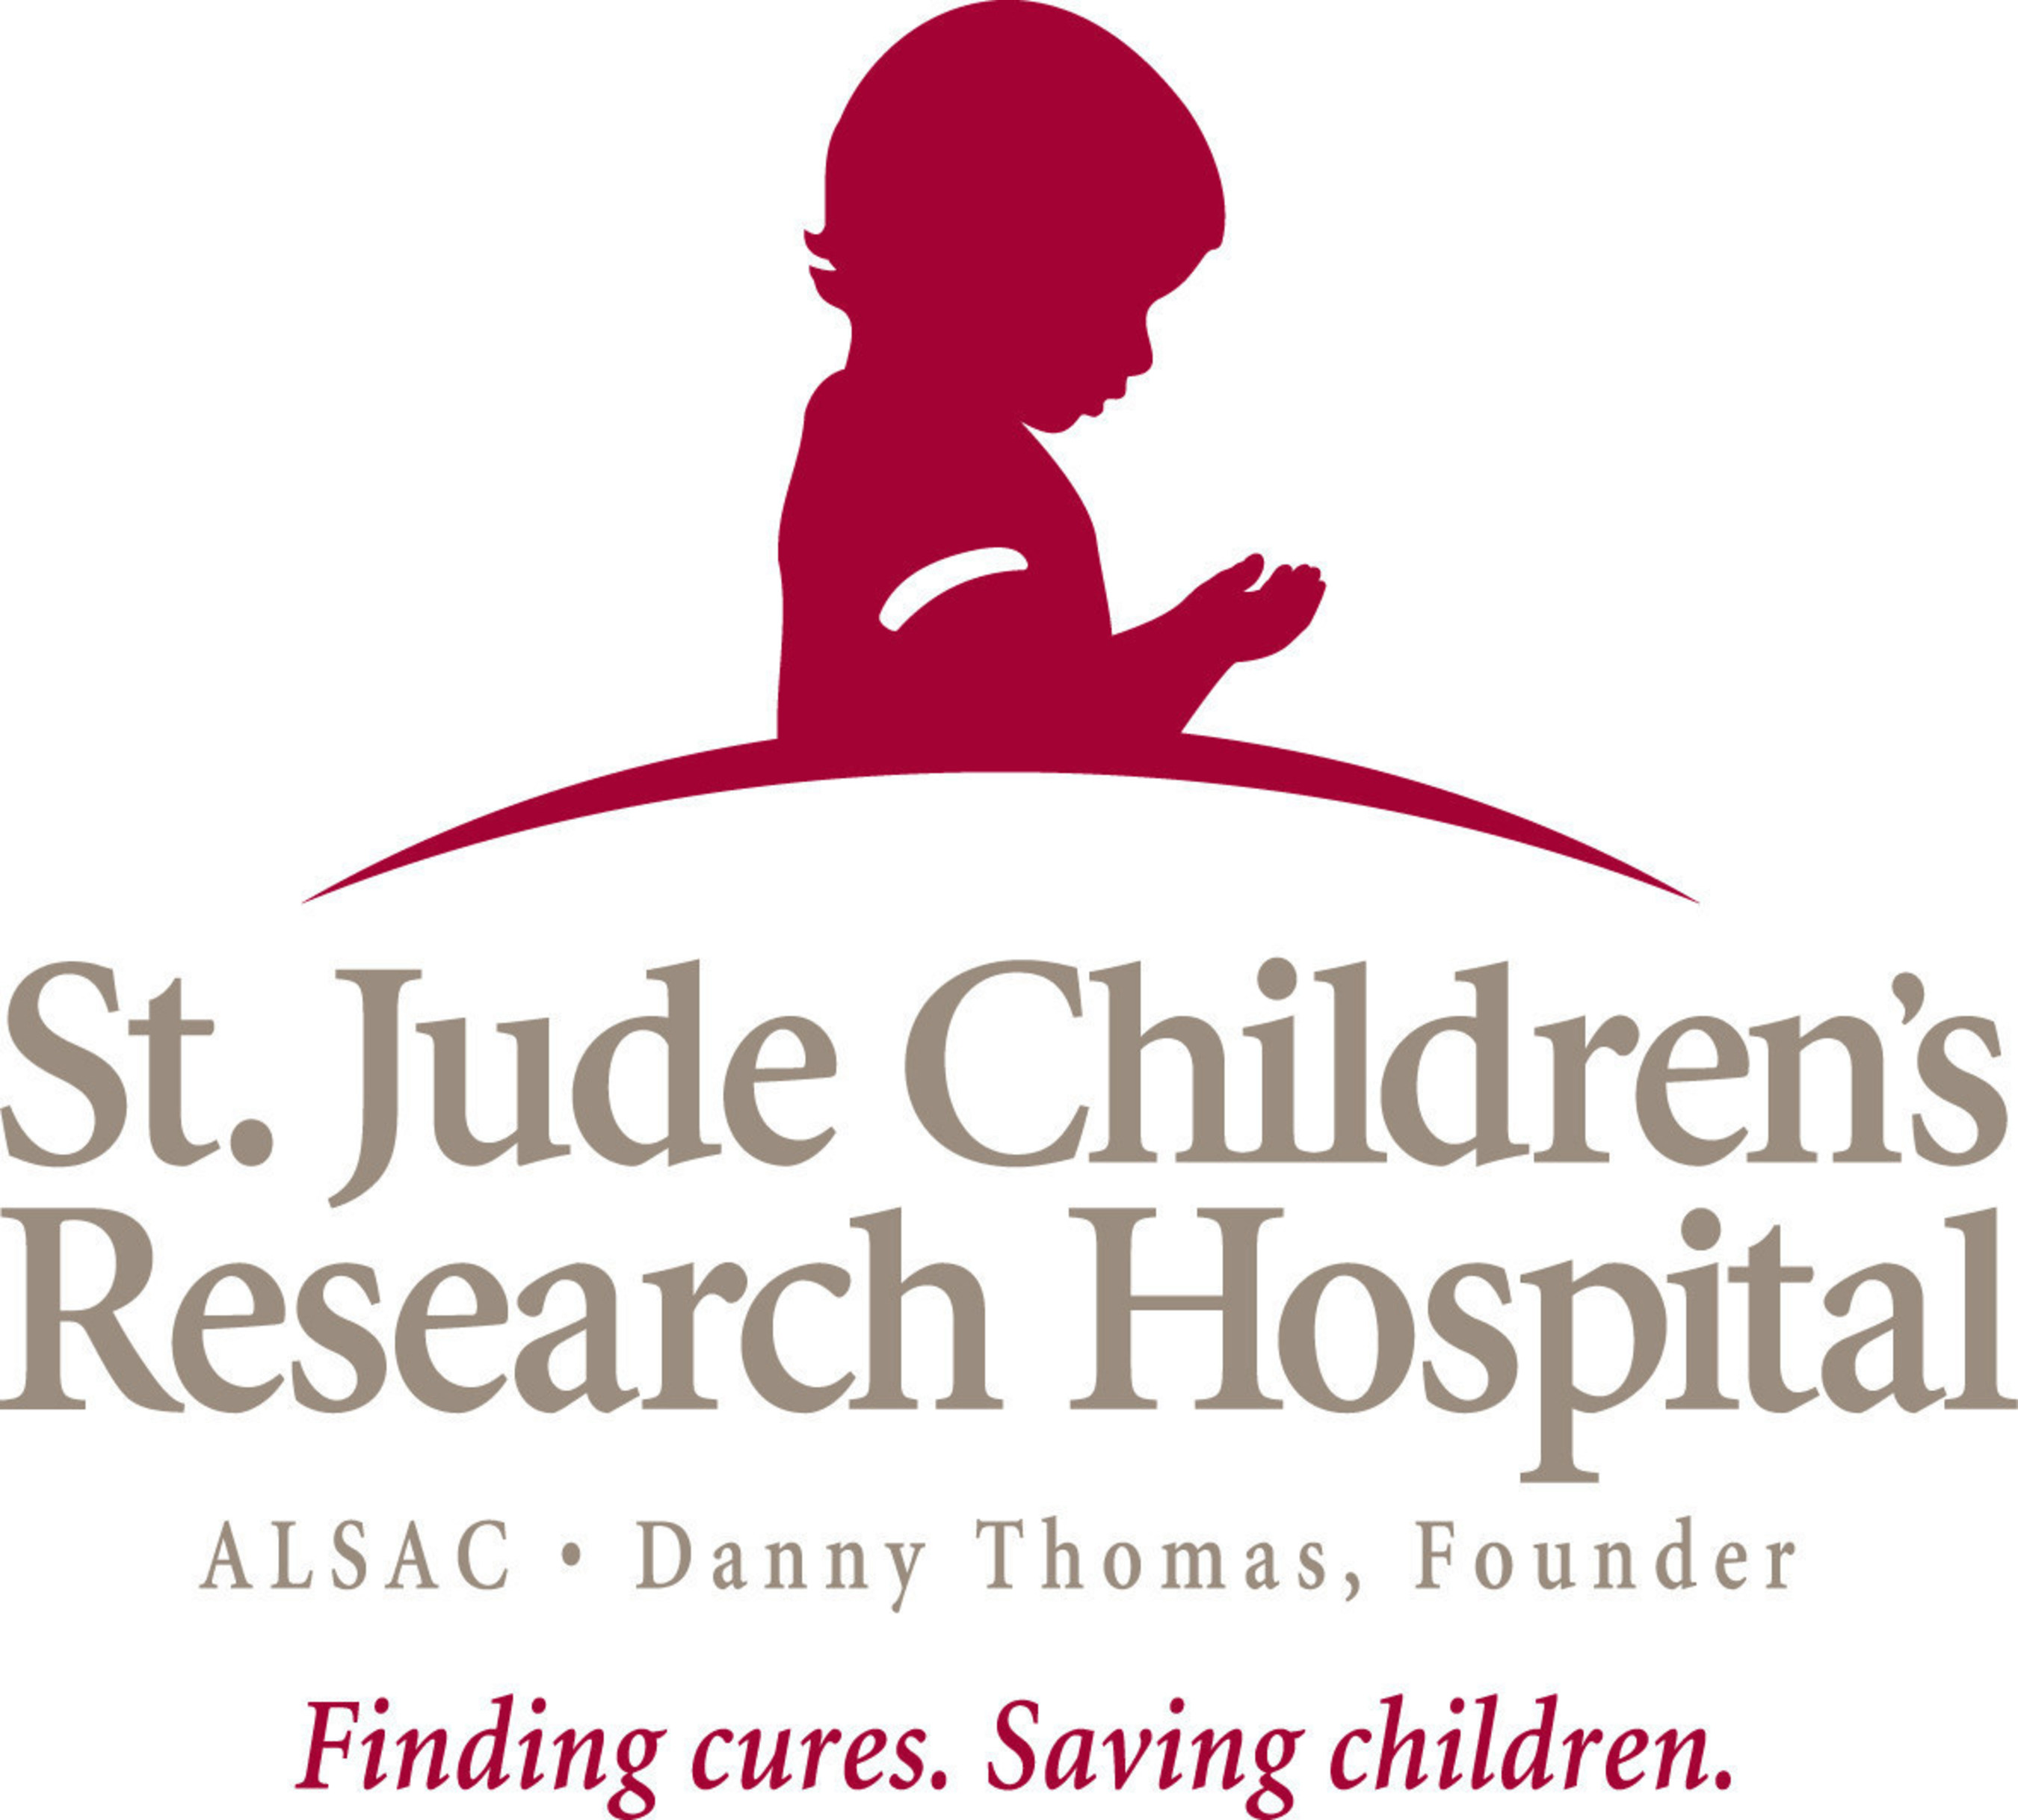 Western Refining raises $847,811 for St. Jude Children's Research Hospital® during 'Monster'